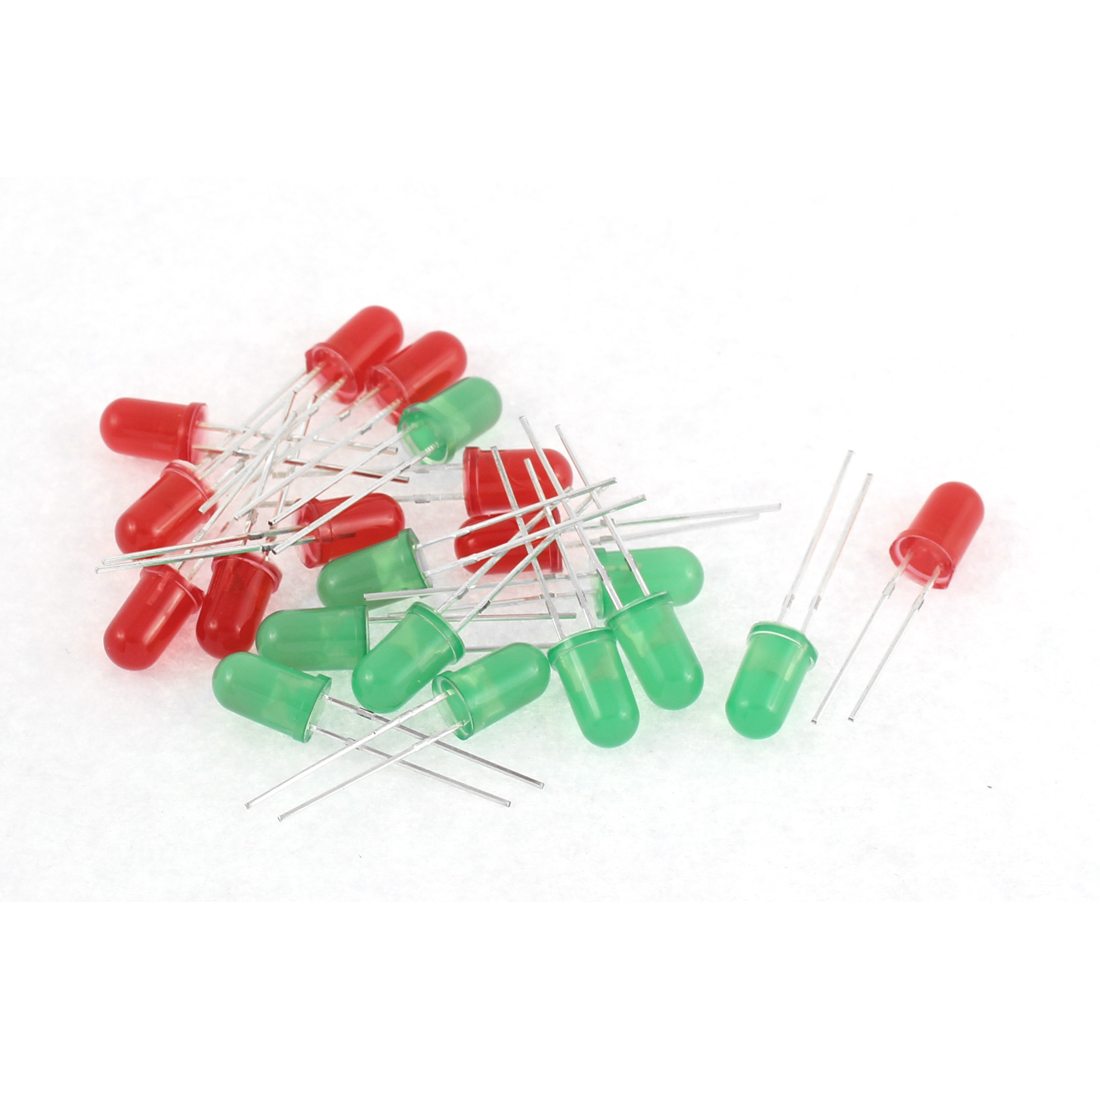 20pcs 5mm Red Green Light-emitting Diode Lamp DIY LEDs